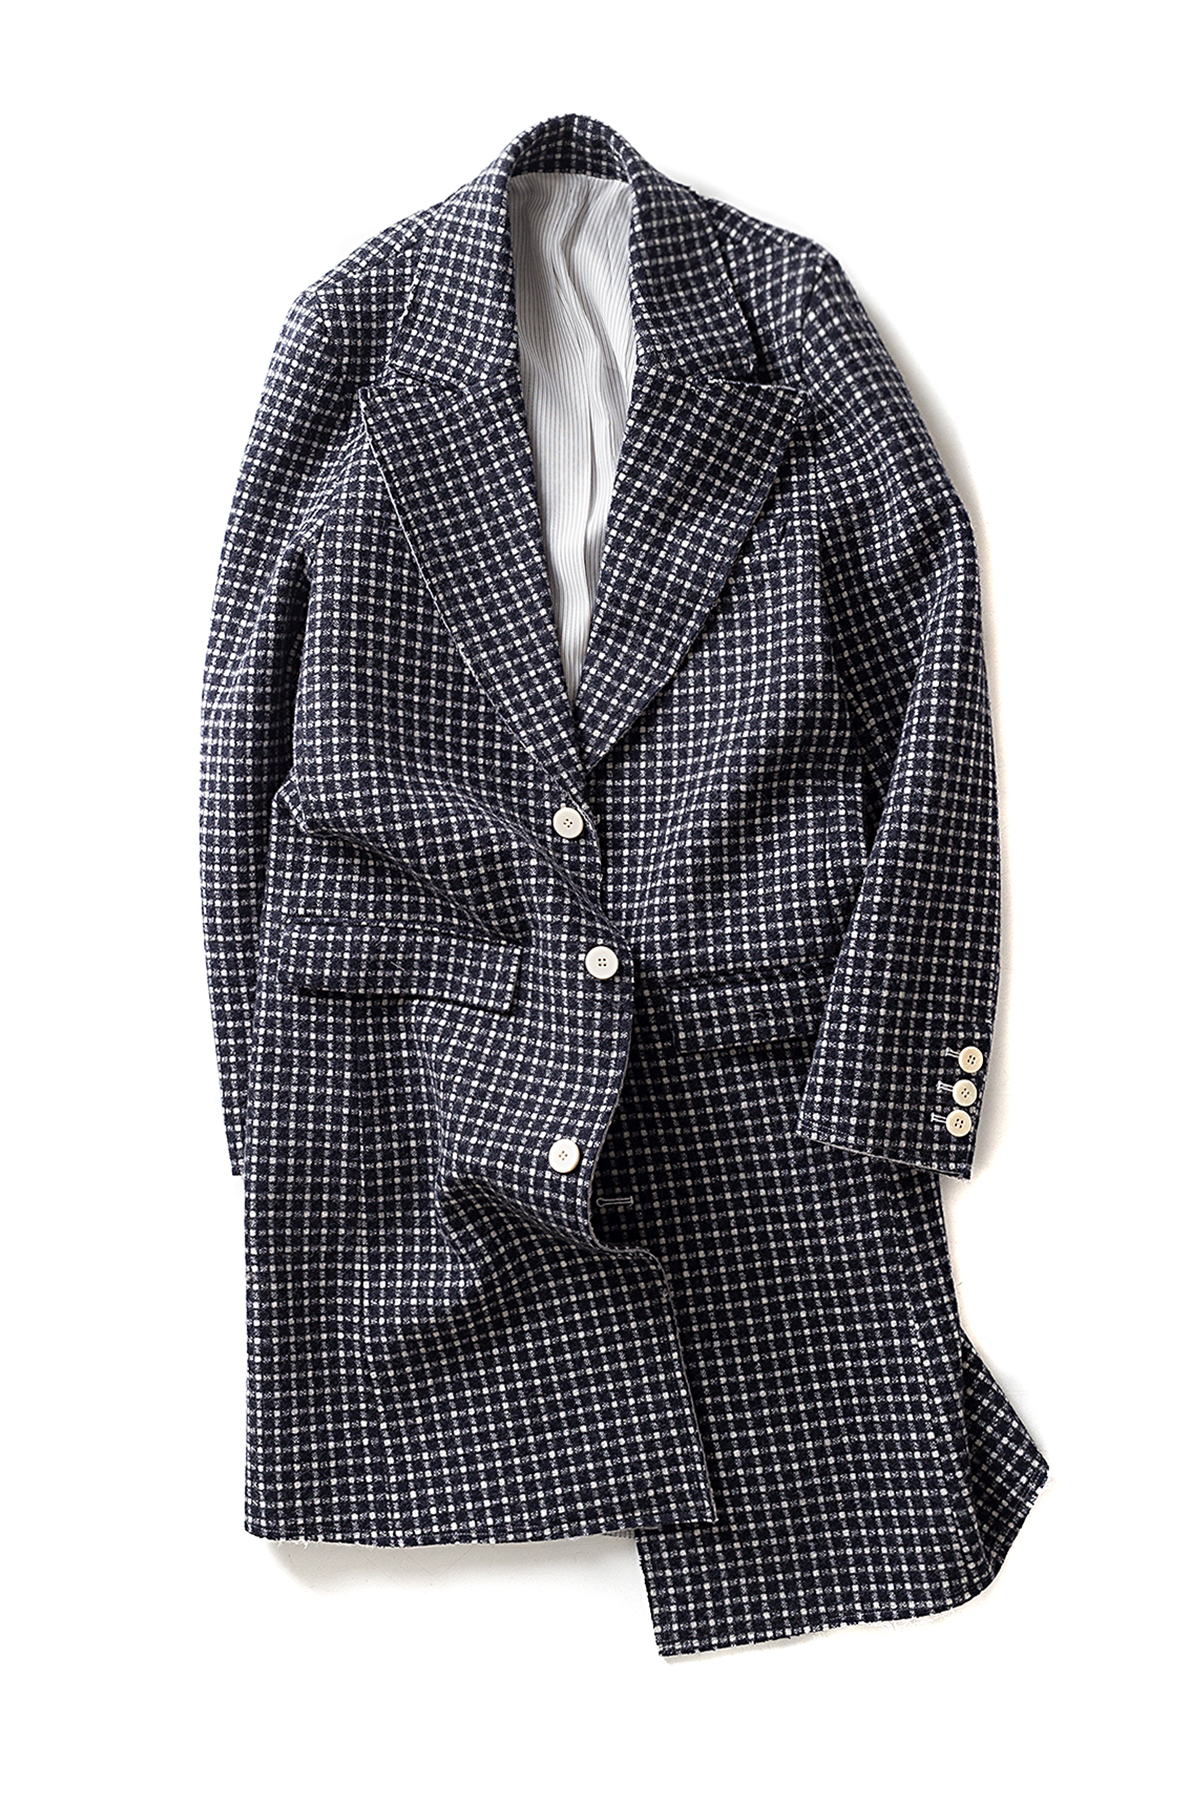 Ooparts : Notched-Lapel Wool Coat (Grey x Navy Circle Check)